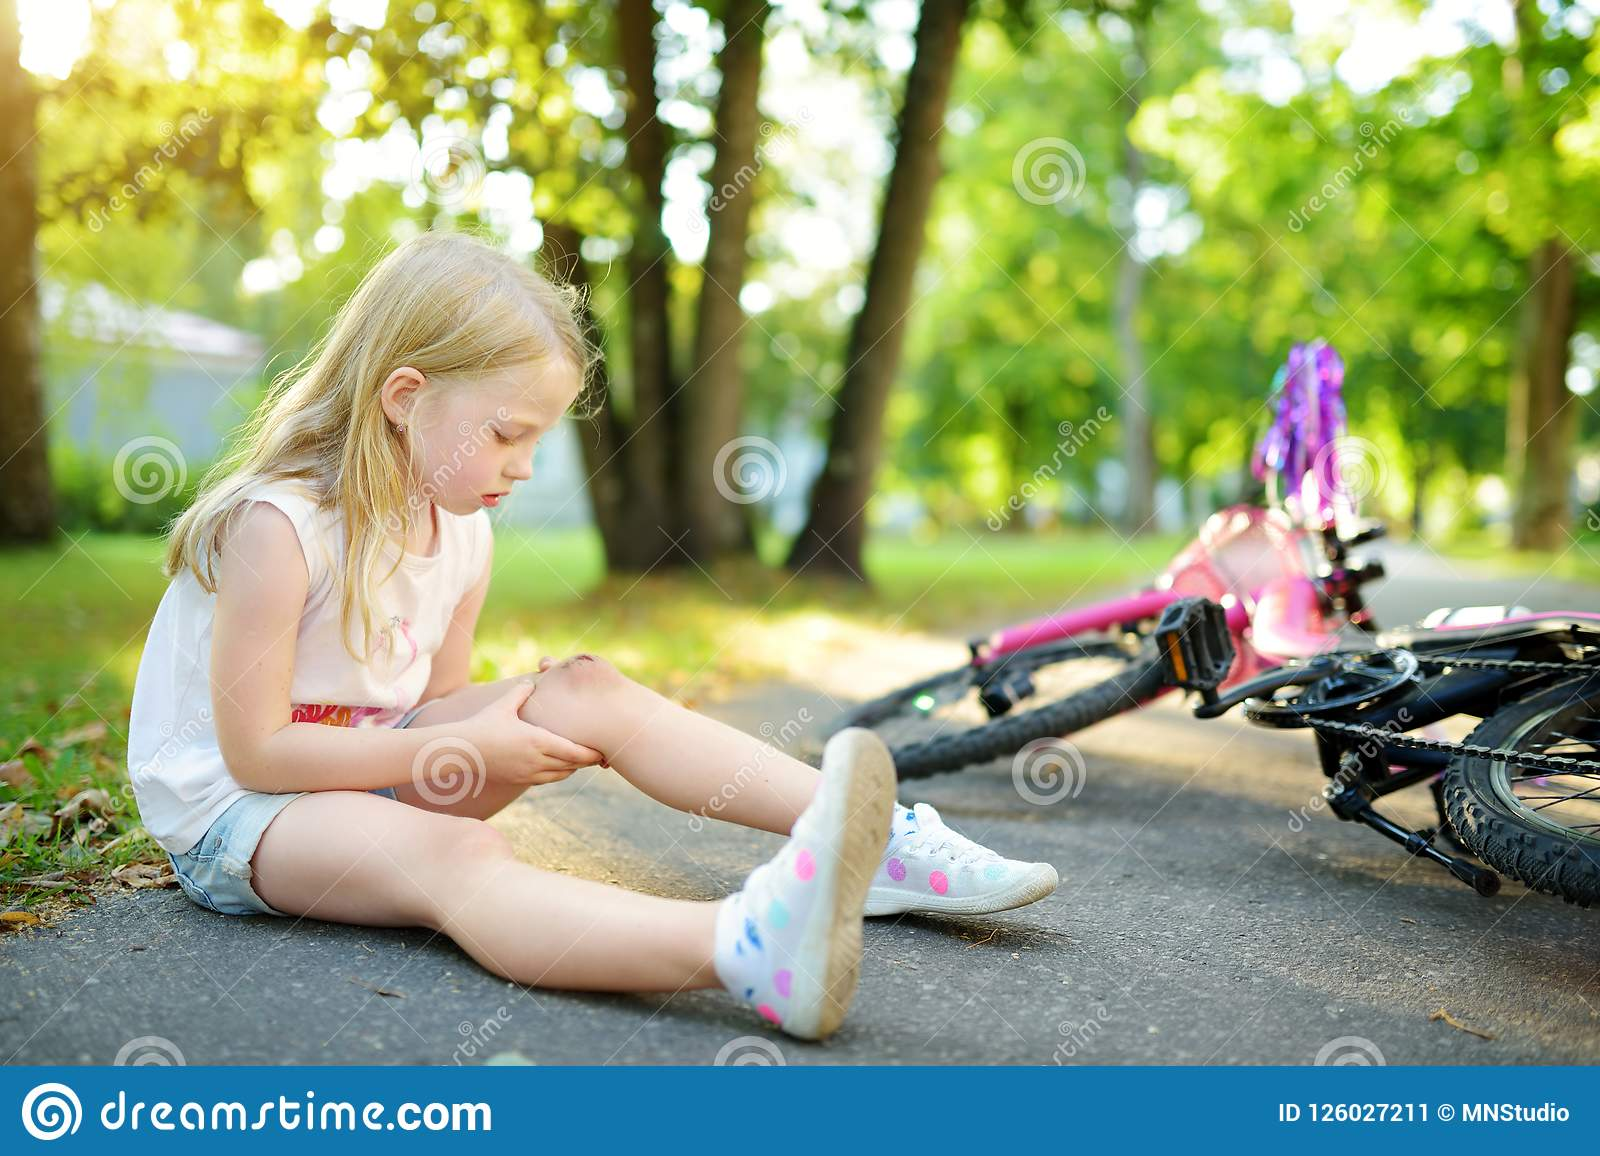 Cute little girl sitting on the ground after falling off her bike at summer park. Child getting hurt while riding a bicycle.